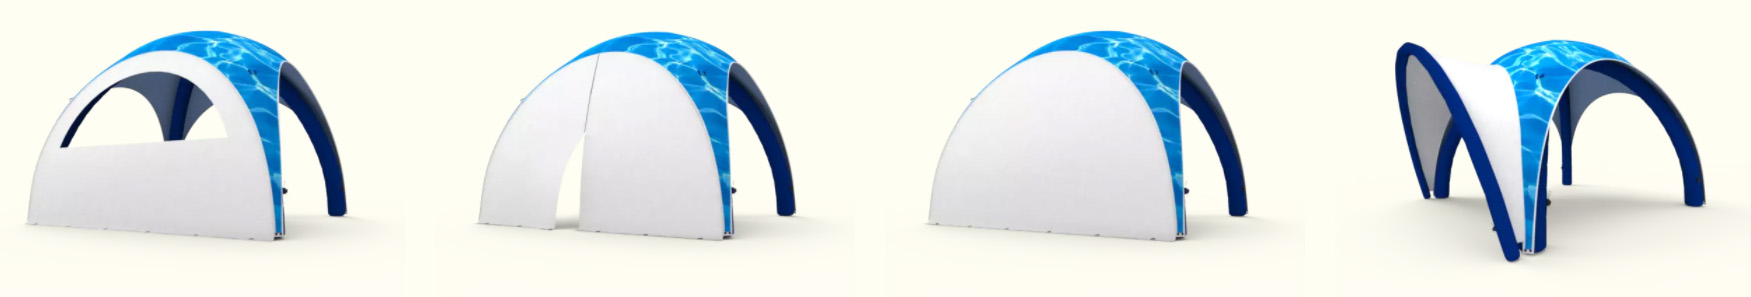 inflatable-tents-accessories-1